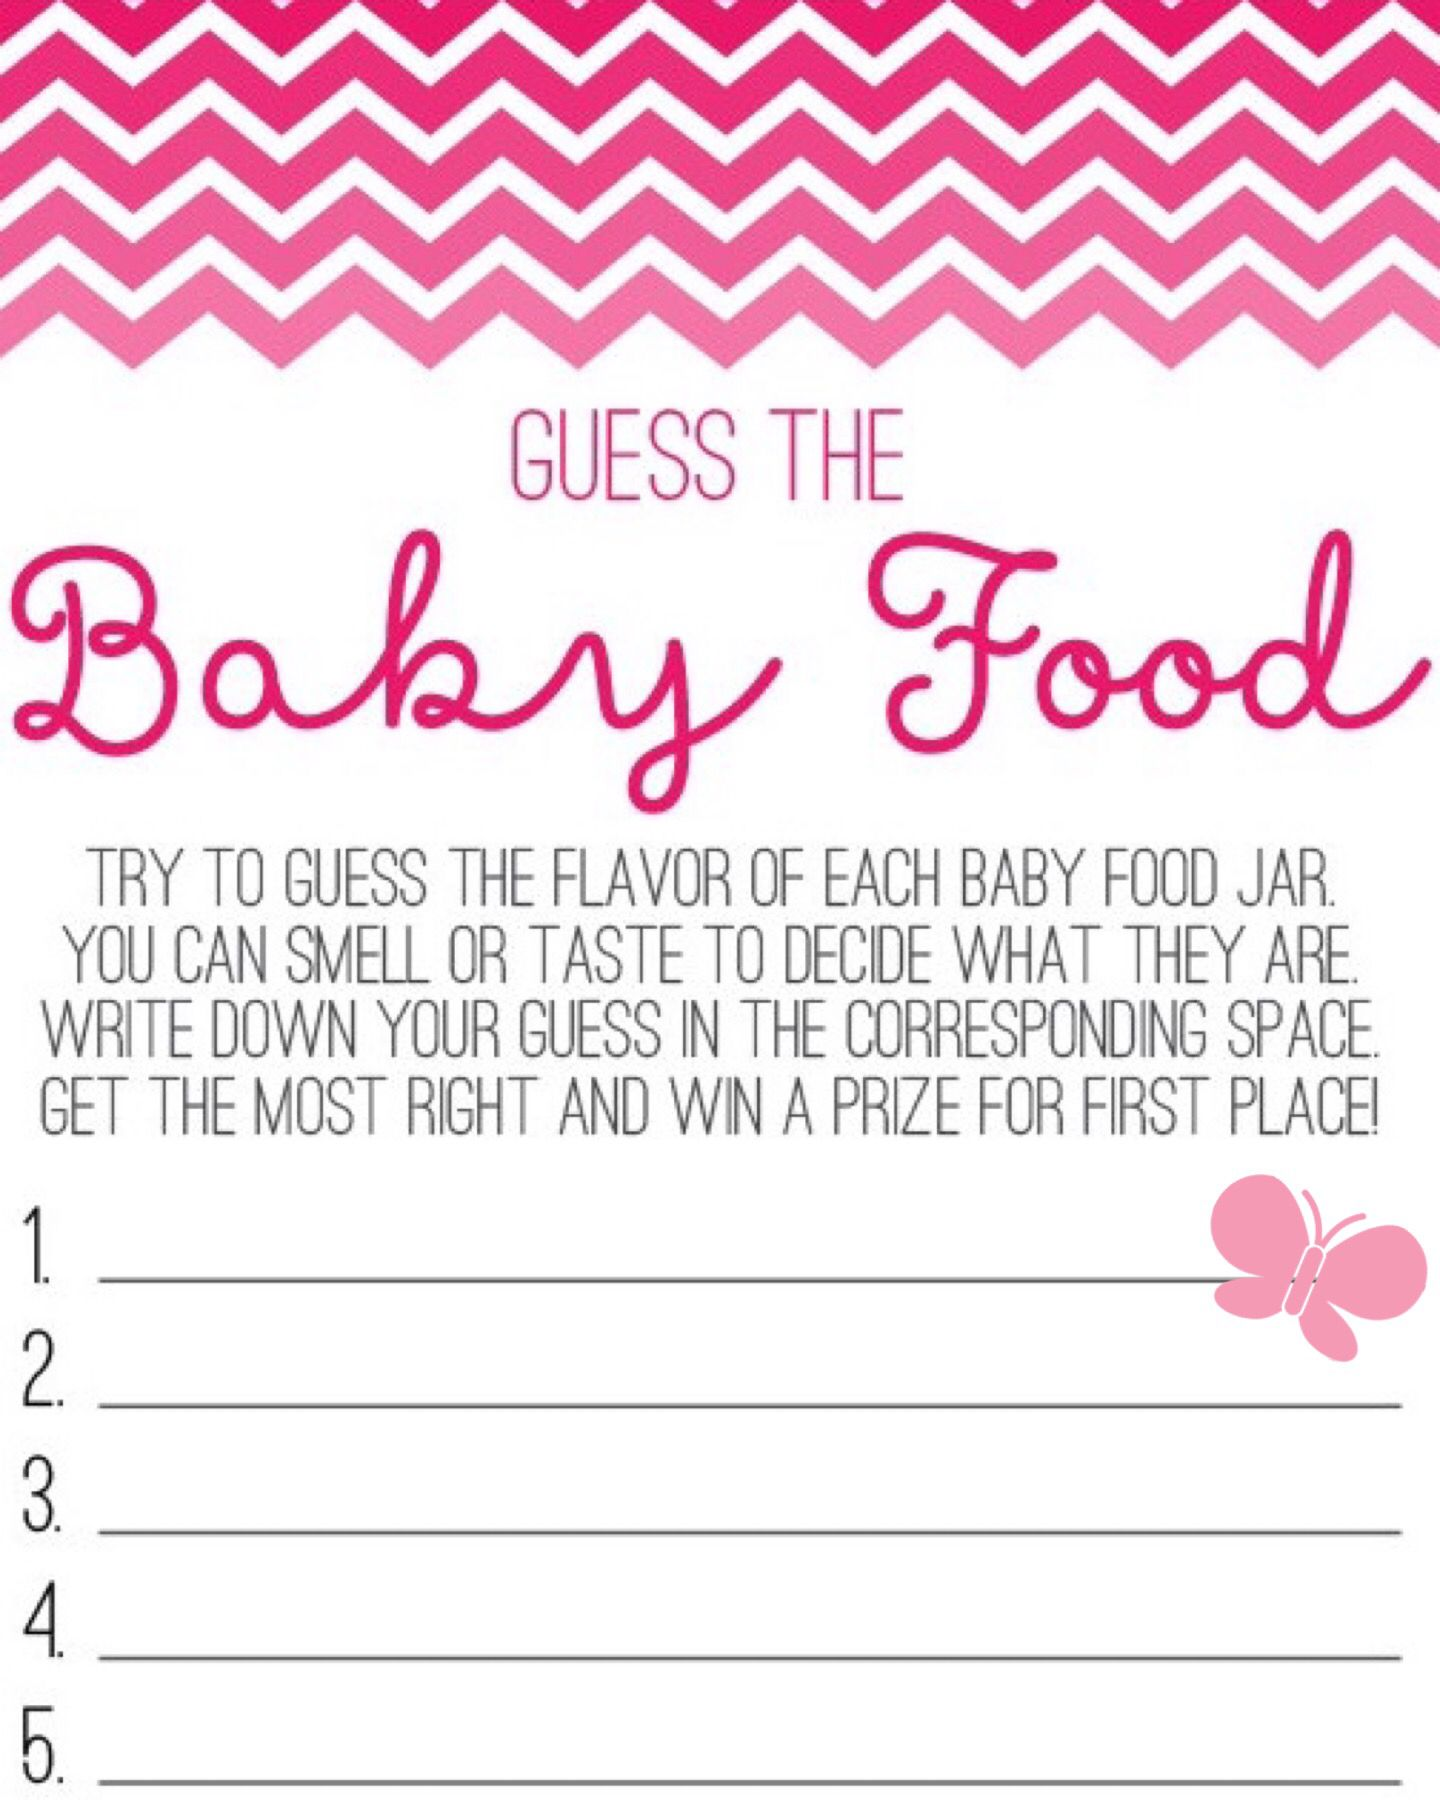 image about Guess the Baby Food Game Free Printable identify Butterfly wager the little one food stuff activity sheet kid shower within just